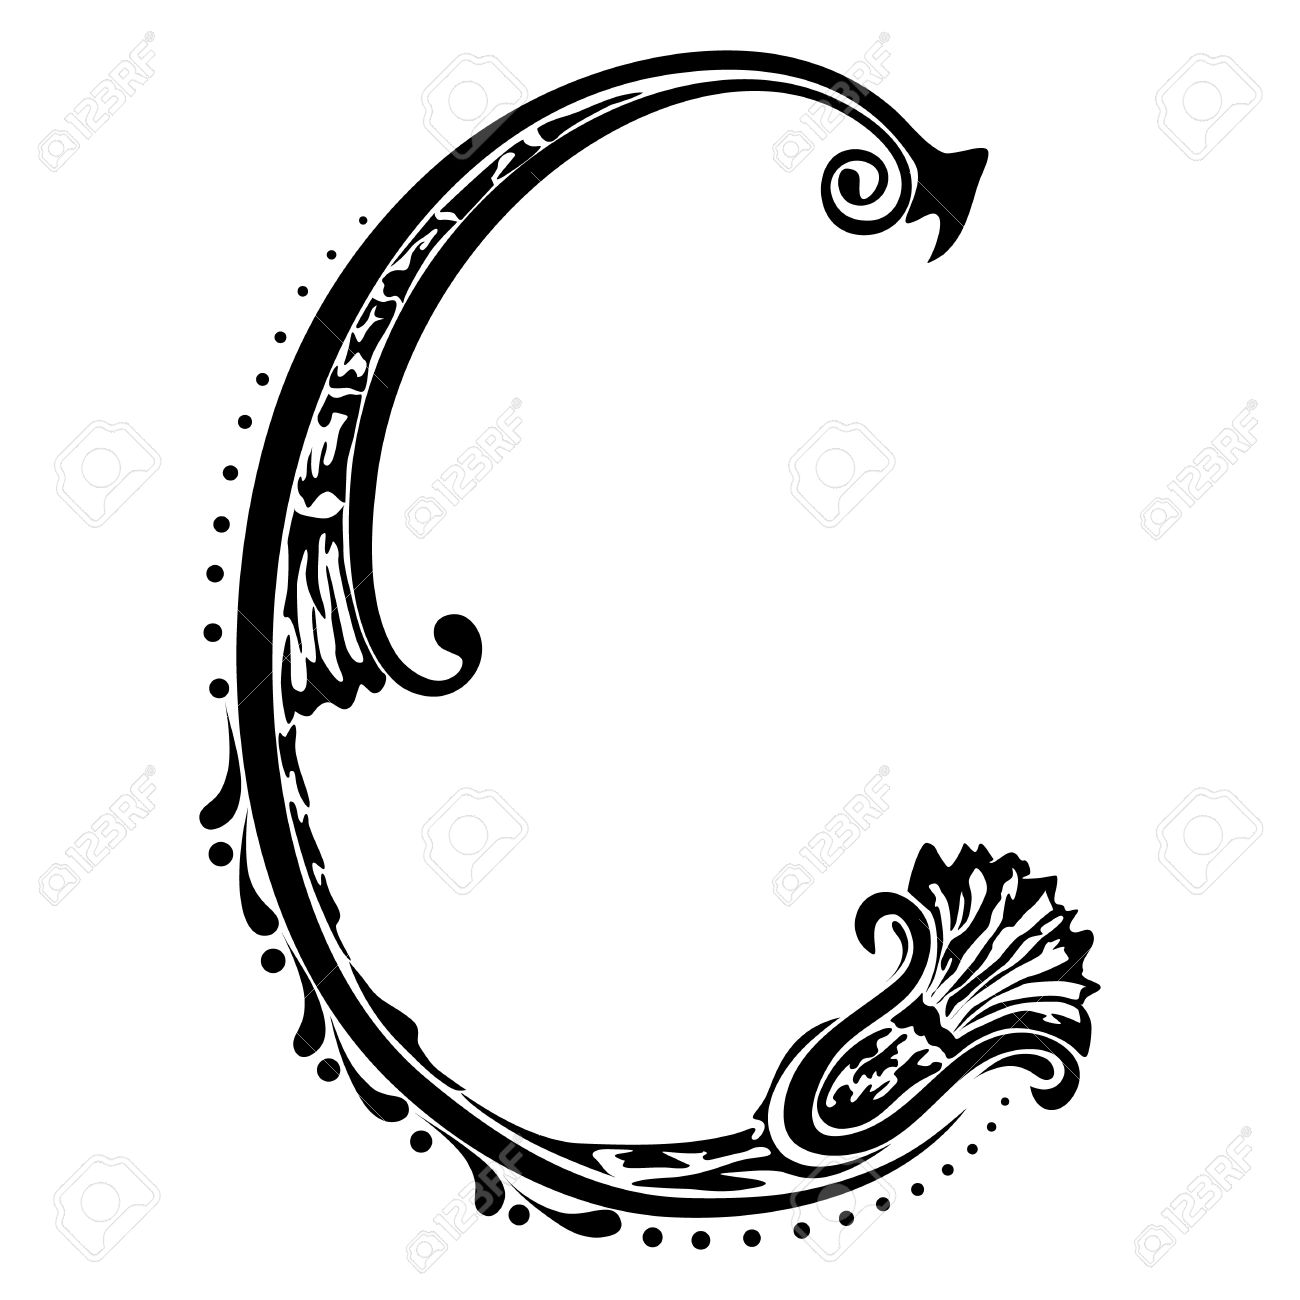 Initial Letter C On A White Background Royalty Free Cliparts